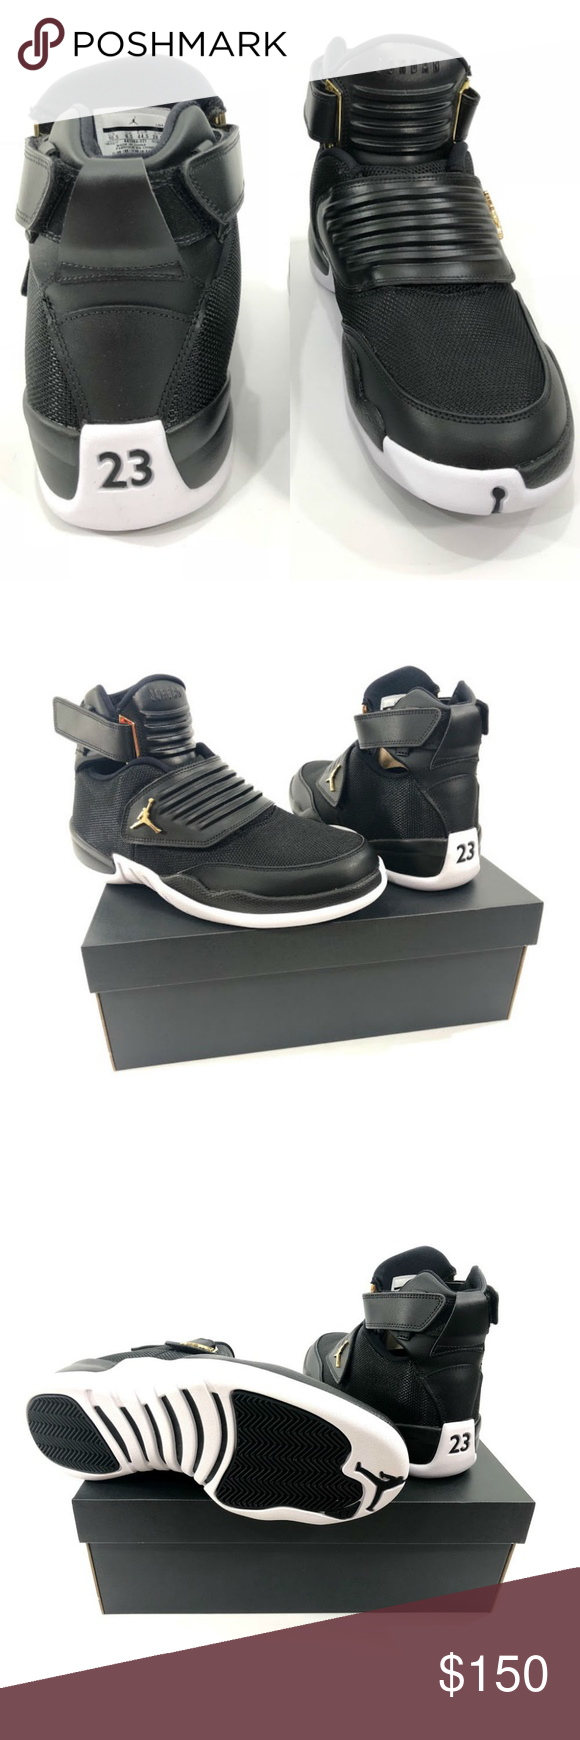 69f79b9da04e Air Jordan Generation 23 Men s Shoes AA1294 021 Air Jordan Jordan 23 Men s  athletic shoes Size 10.5 Black White   Metallic Gold High top New with box  Jordan ...